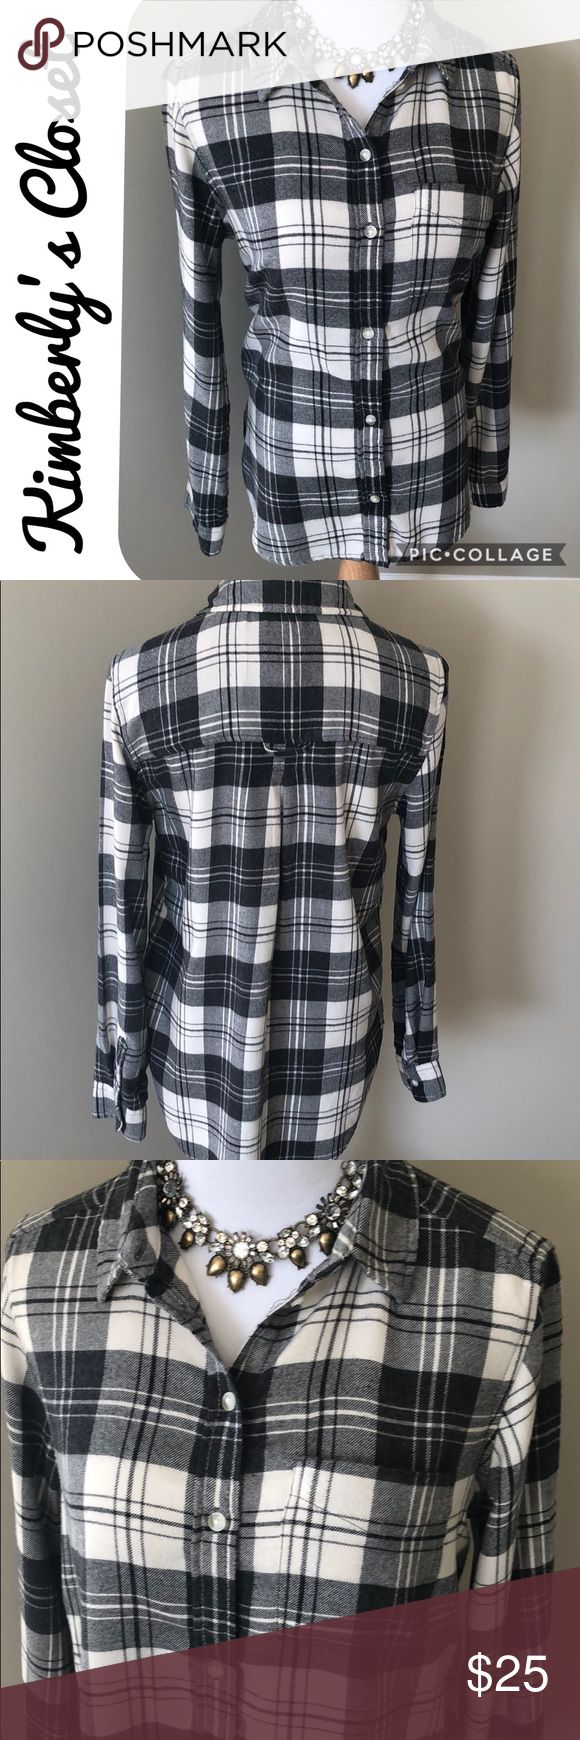 🛍AMERICAN EAGLE🛍 Plaid Flannel Shirt AMERICAN EAGLE black and off- white women's boyfriend fit lightweight flannel shirt.  Add a statement necklace for a feminine touch.  Only worn one time - excellent condition. American Eagle Outfitters Tops Button Down Shirts #americaneagleoutfitters